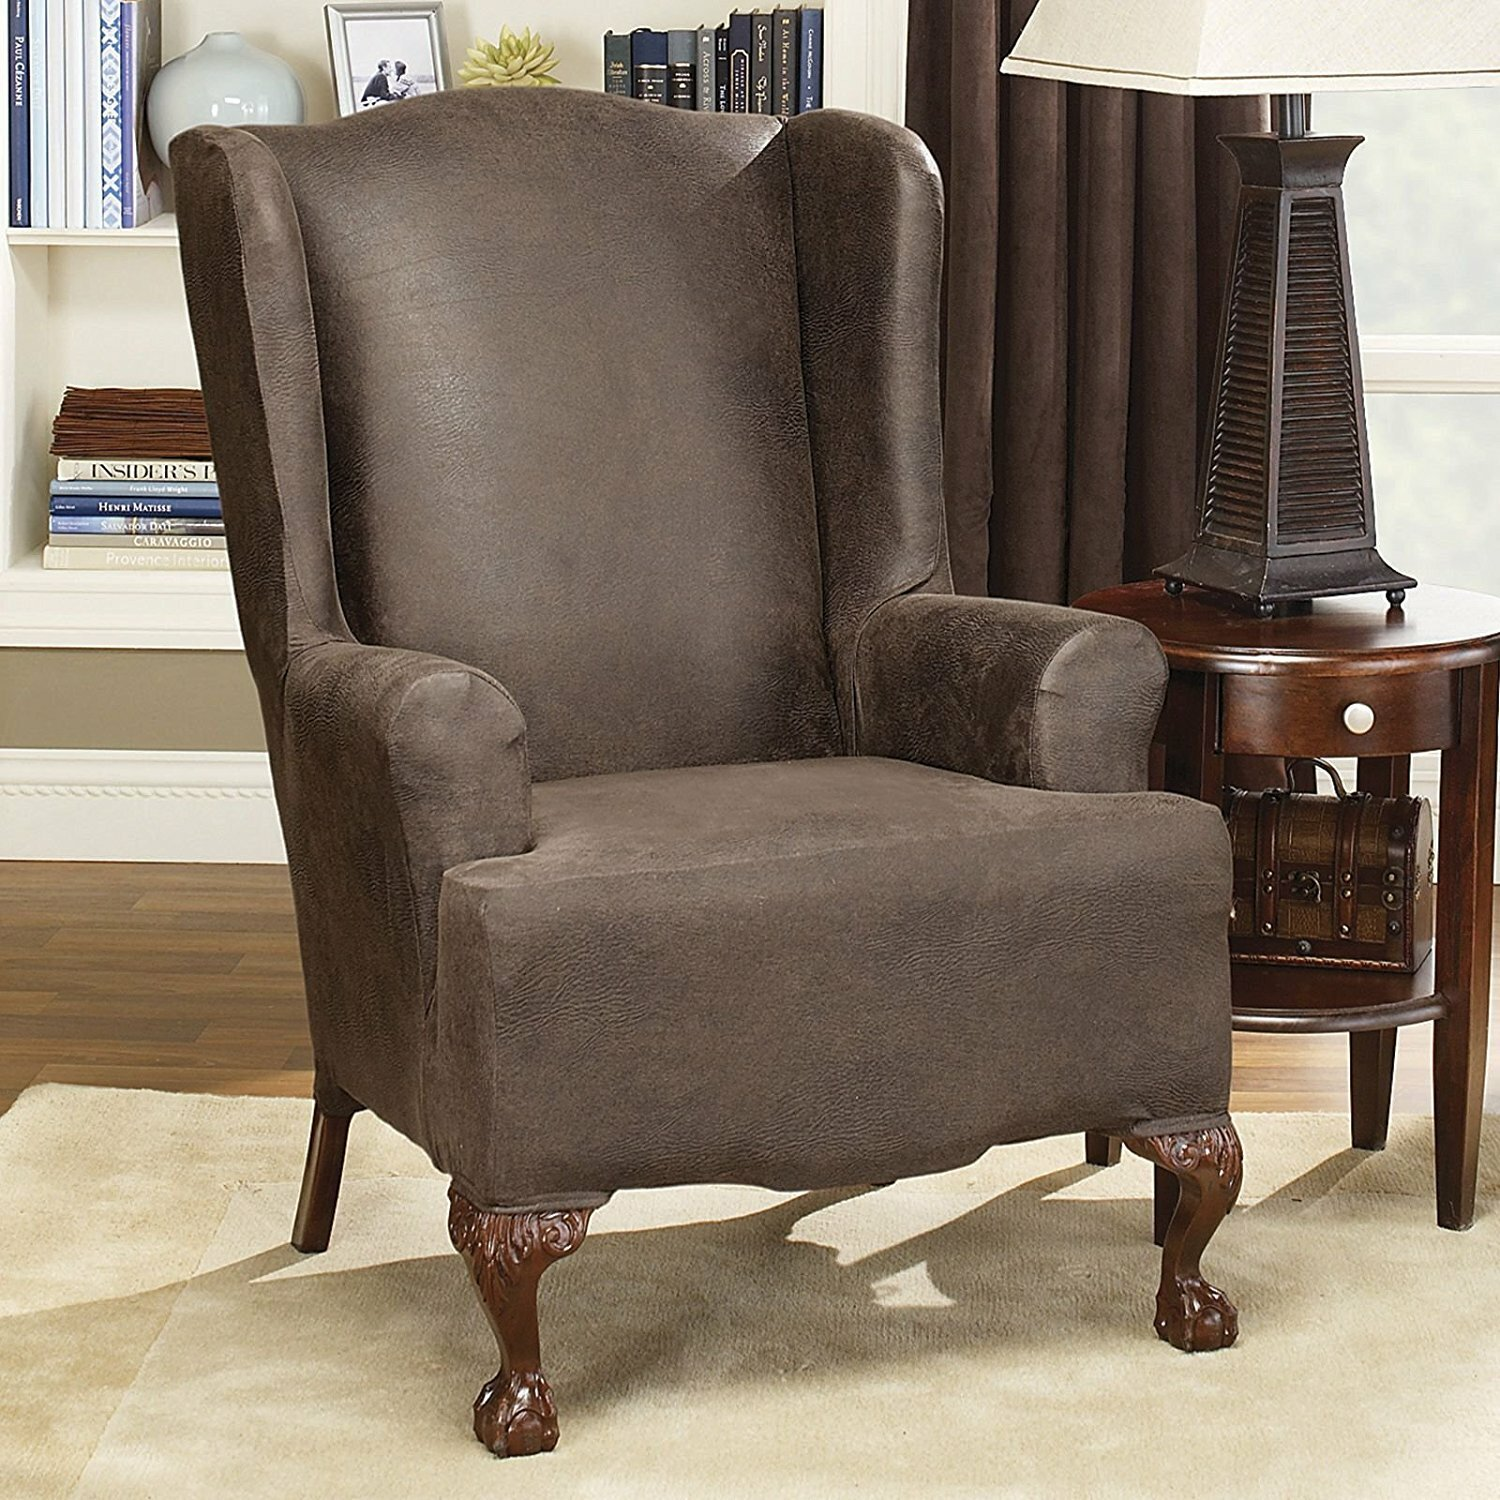 Ordinaire Sure Fit Stretch Leather T Cushion Wingback Slipcover U0026 Reviews | Wayfair